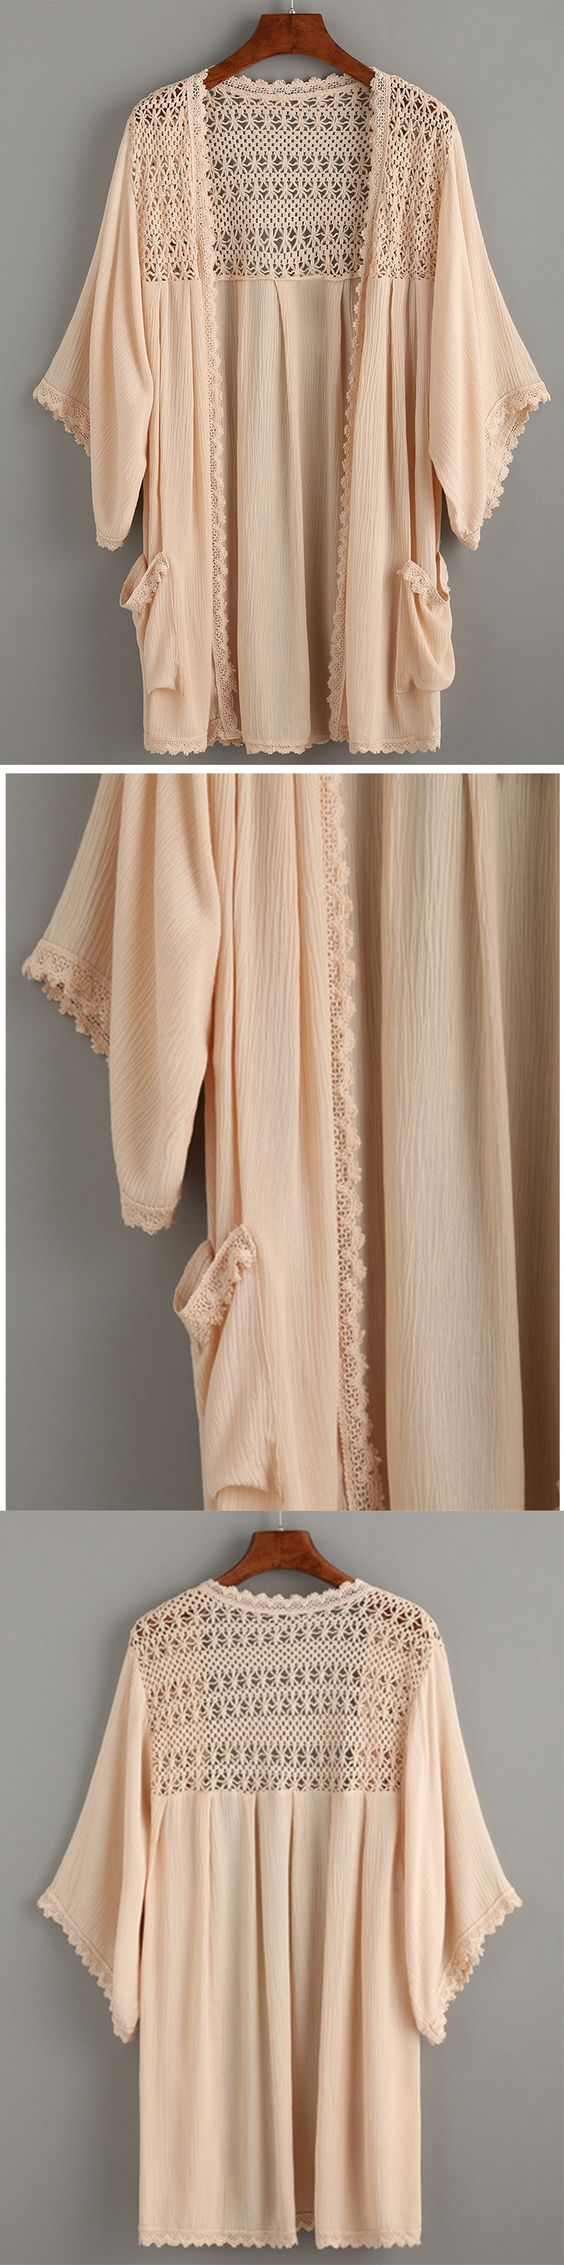 Apricot Crochet Hollow Out Kimono With Pockets